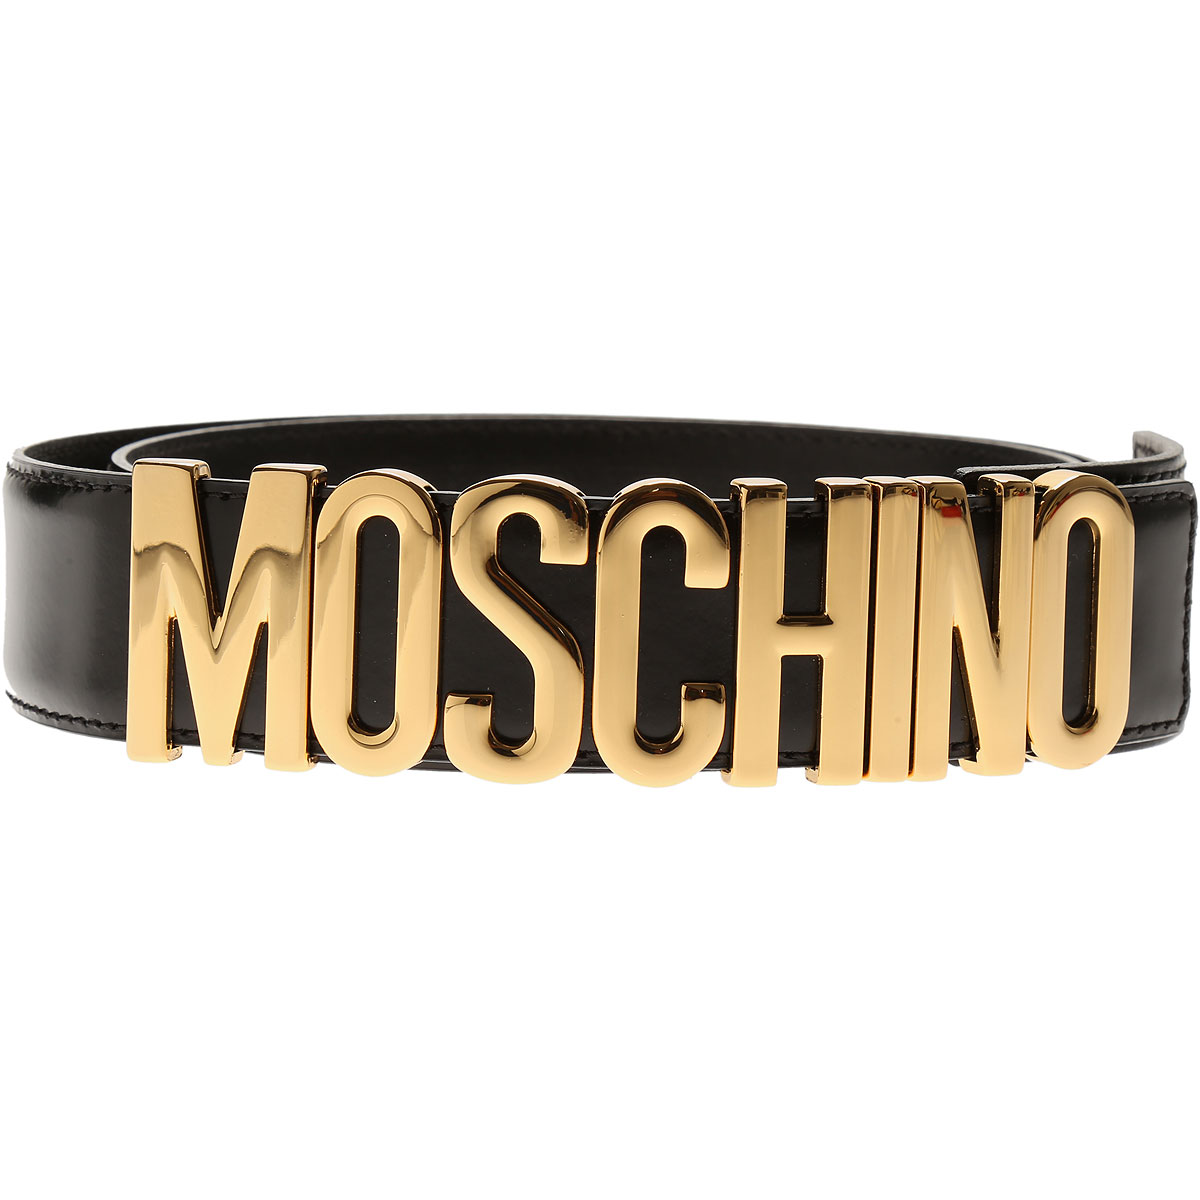 Moschino Womens Belts, Black, Leather, 2017, 36 inches - 90 cm 40 inches - 100 cm 42 inches - 105 cm 44 inches - 110 cm